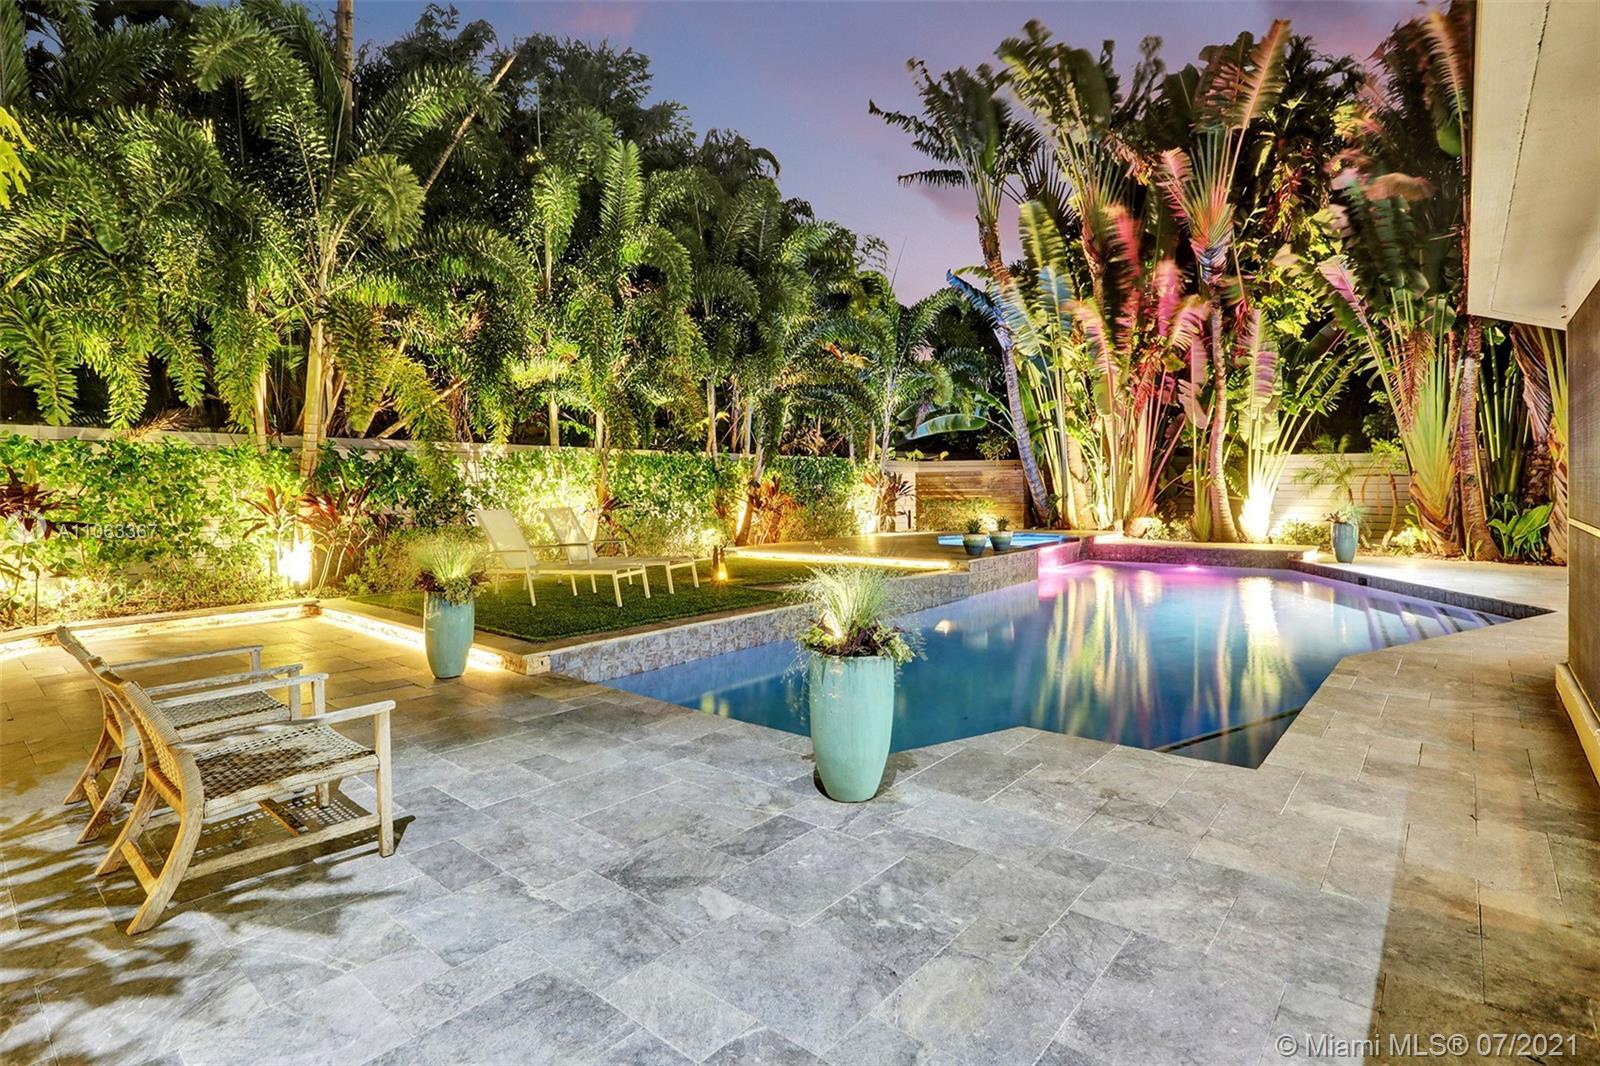 Welcome Home to Your Own Piece of Tropical Florida Paradise! Contemporary Elements, Design & Updates